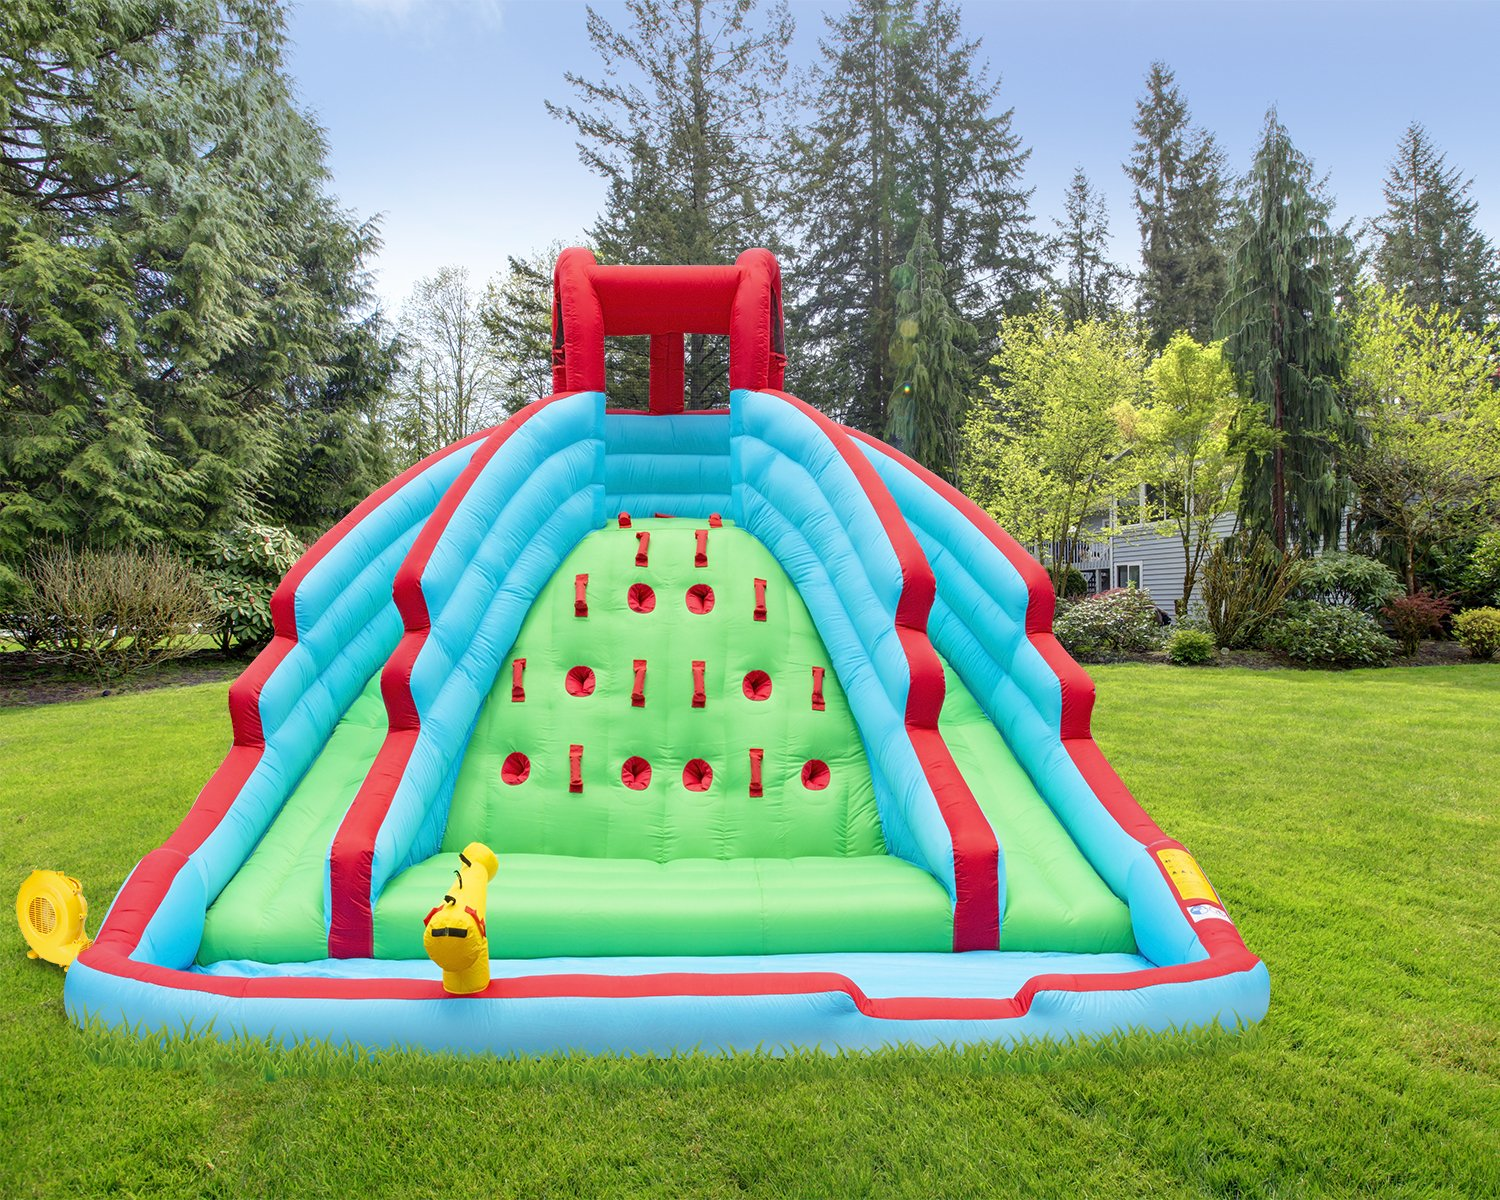 Deluxe Inflatable Water Slide Park – Heavy-Duty Nylon Bouncy Station for Outdoor Fun - Climbing Wall, Two Slides & Splash Pool – Easy to Set Up & Inflate with Included Air Pump & Carrying Case by Sunny & Fun (Image #8)